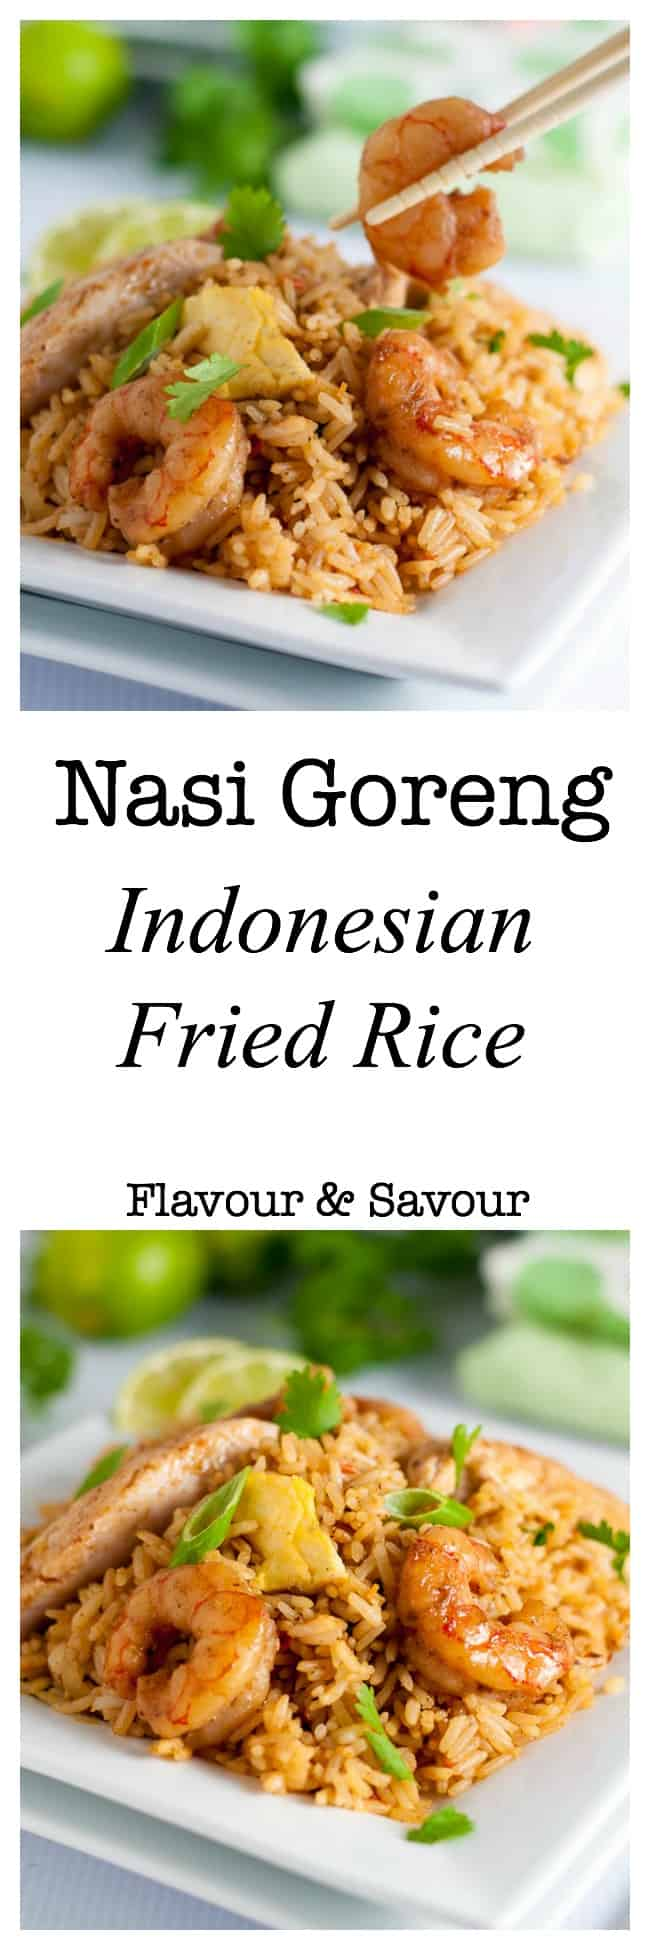 Easy Indonesian Fried Rice--Nasi Goreng. A quick and healthy meal. Add shrimp, chicken or both. Ready in less than 30 minutes!